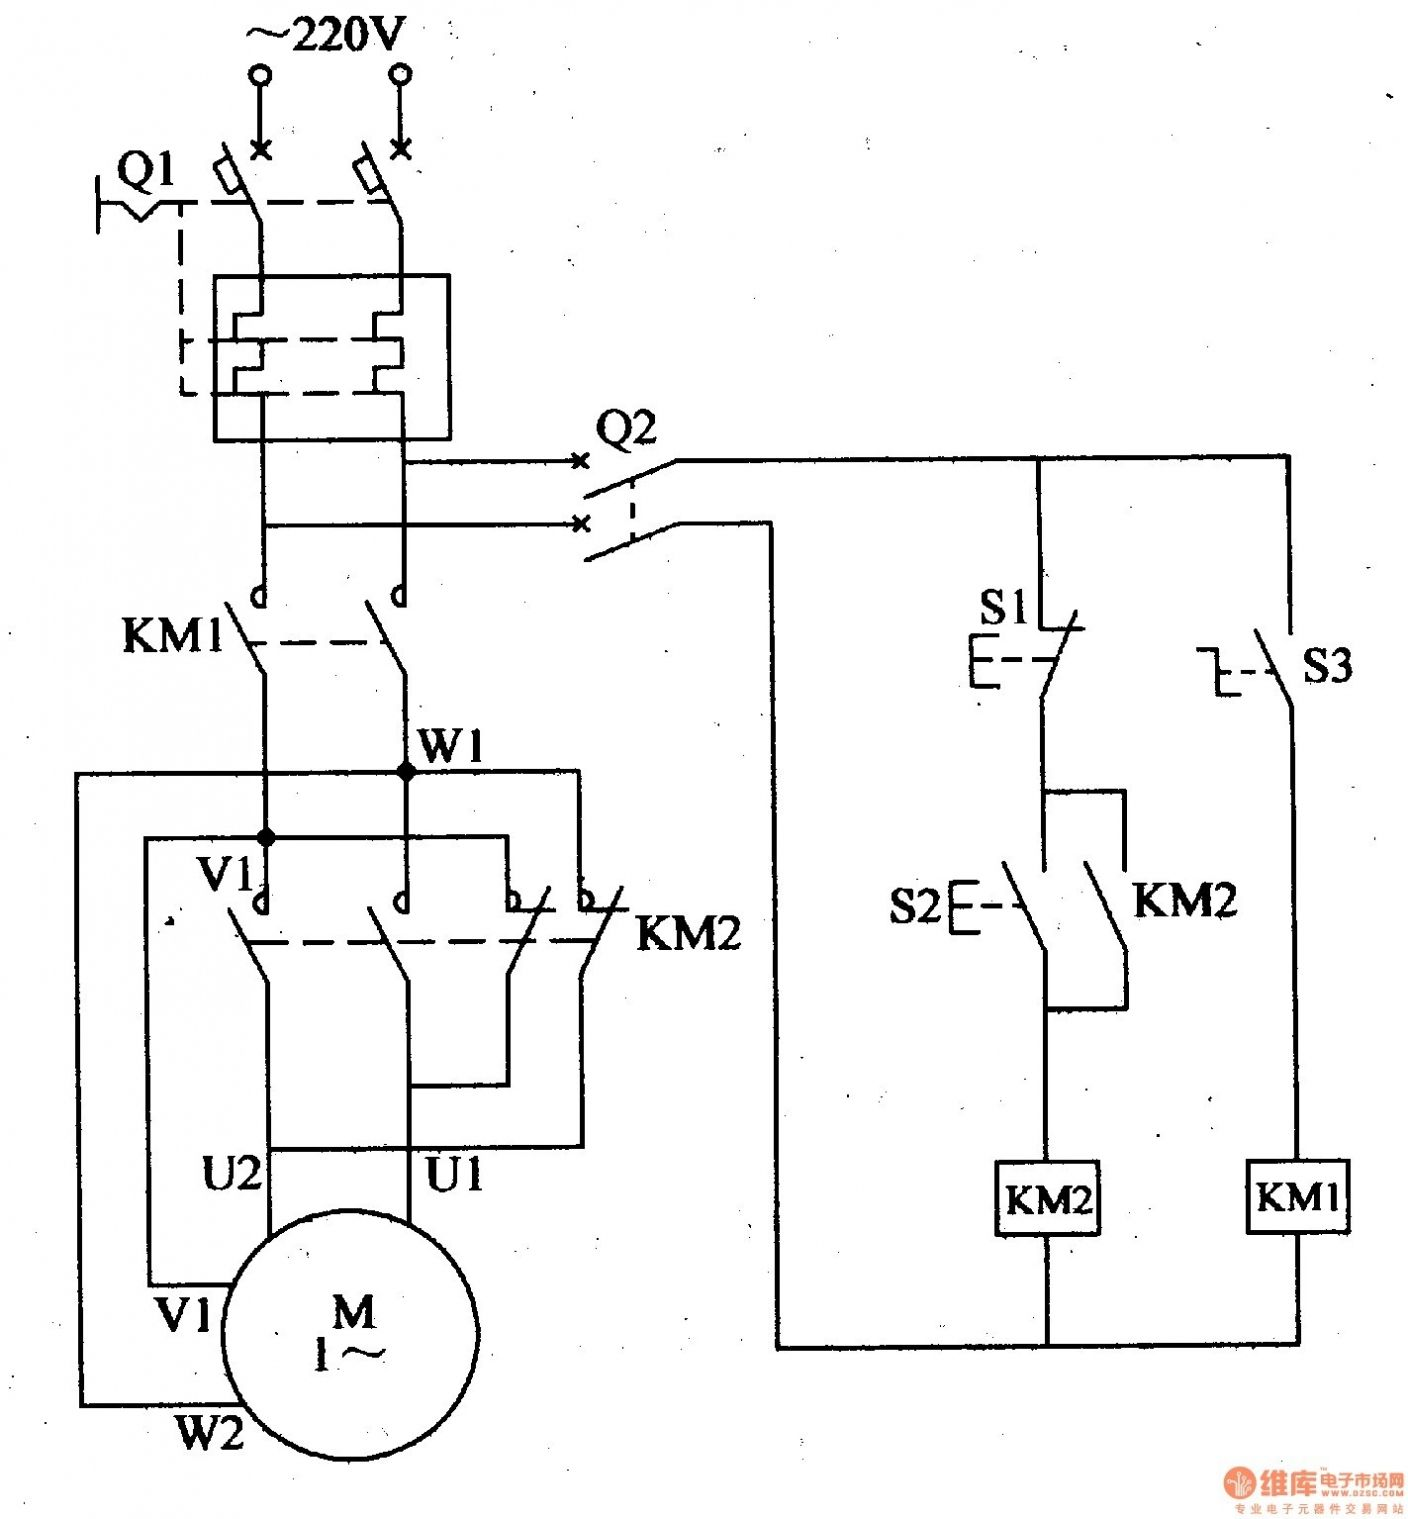 Wiring Diagram Motor Fresh Single Phase Motor Starter Wiring Diagram